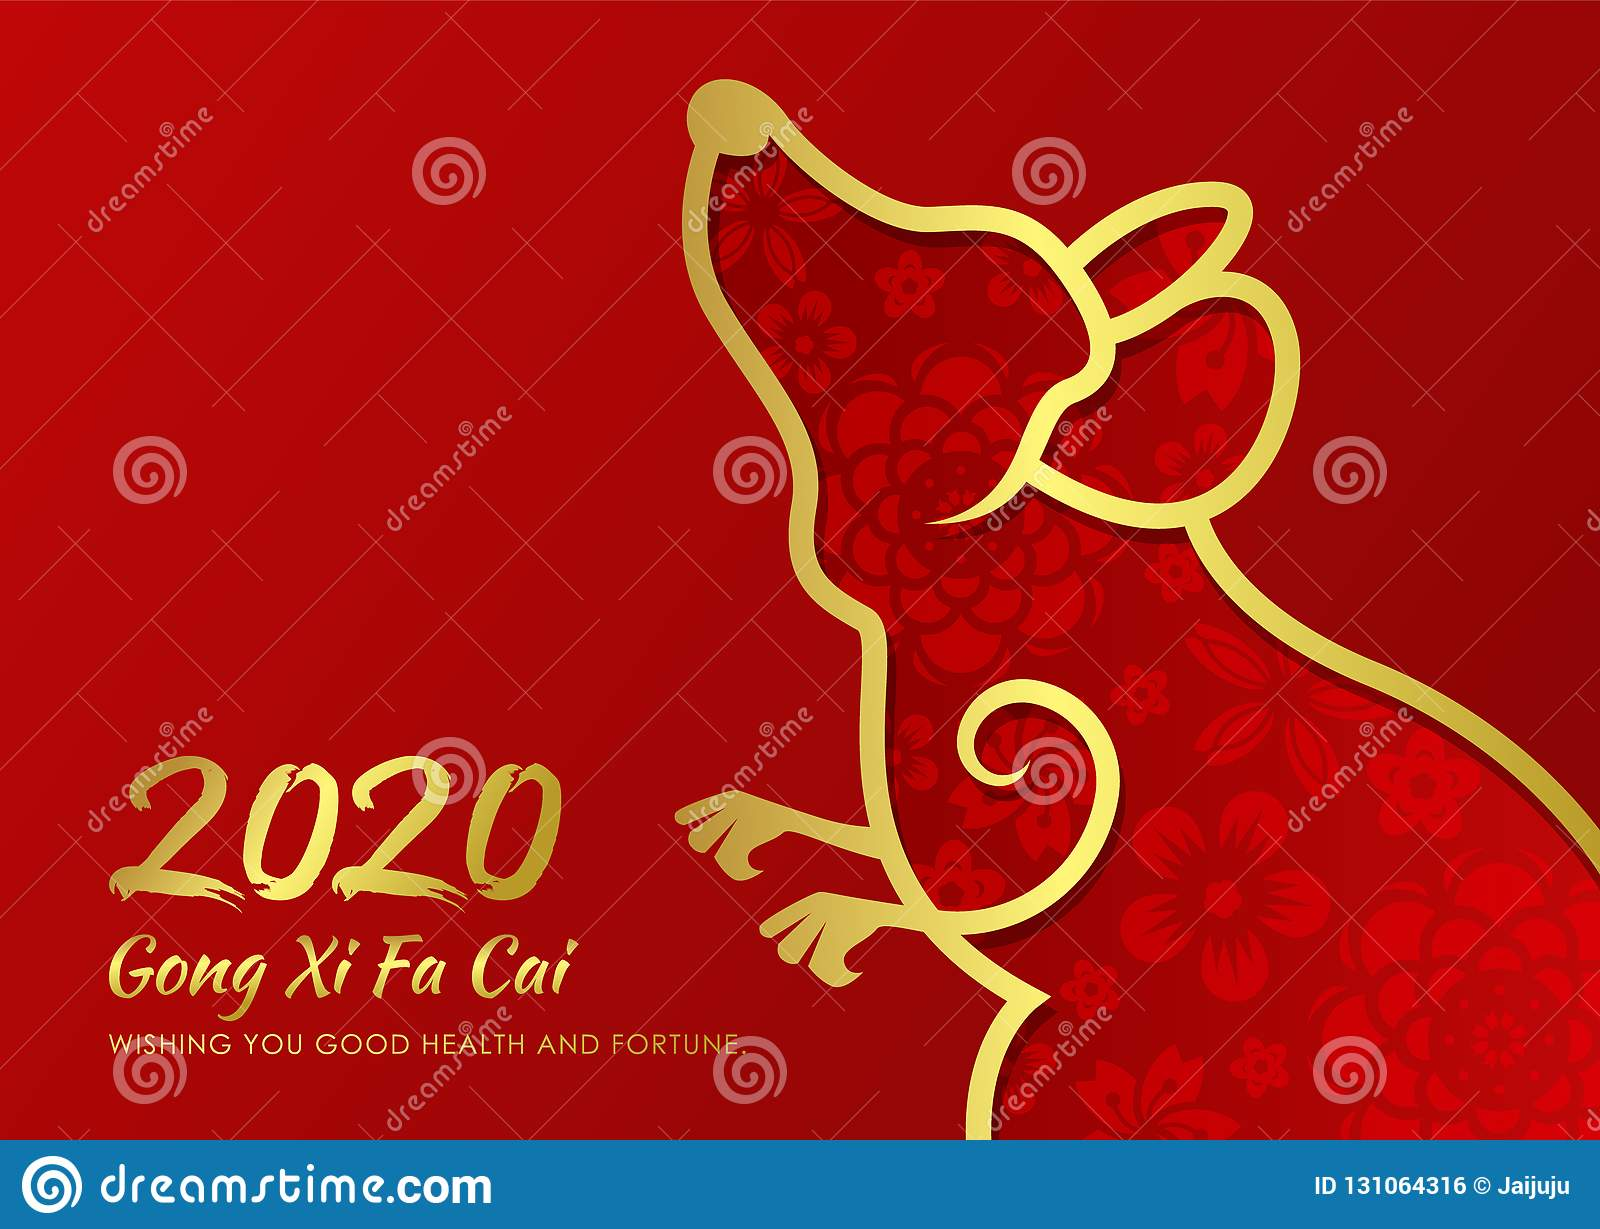 chinese new year 2020 card with abstract gold border line rat zodiac and abstract flower texture